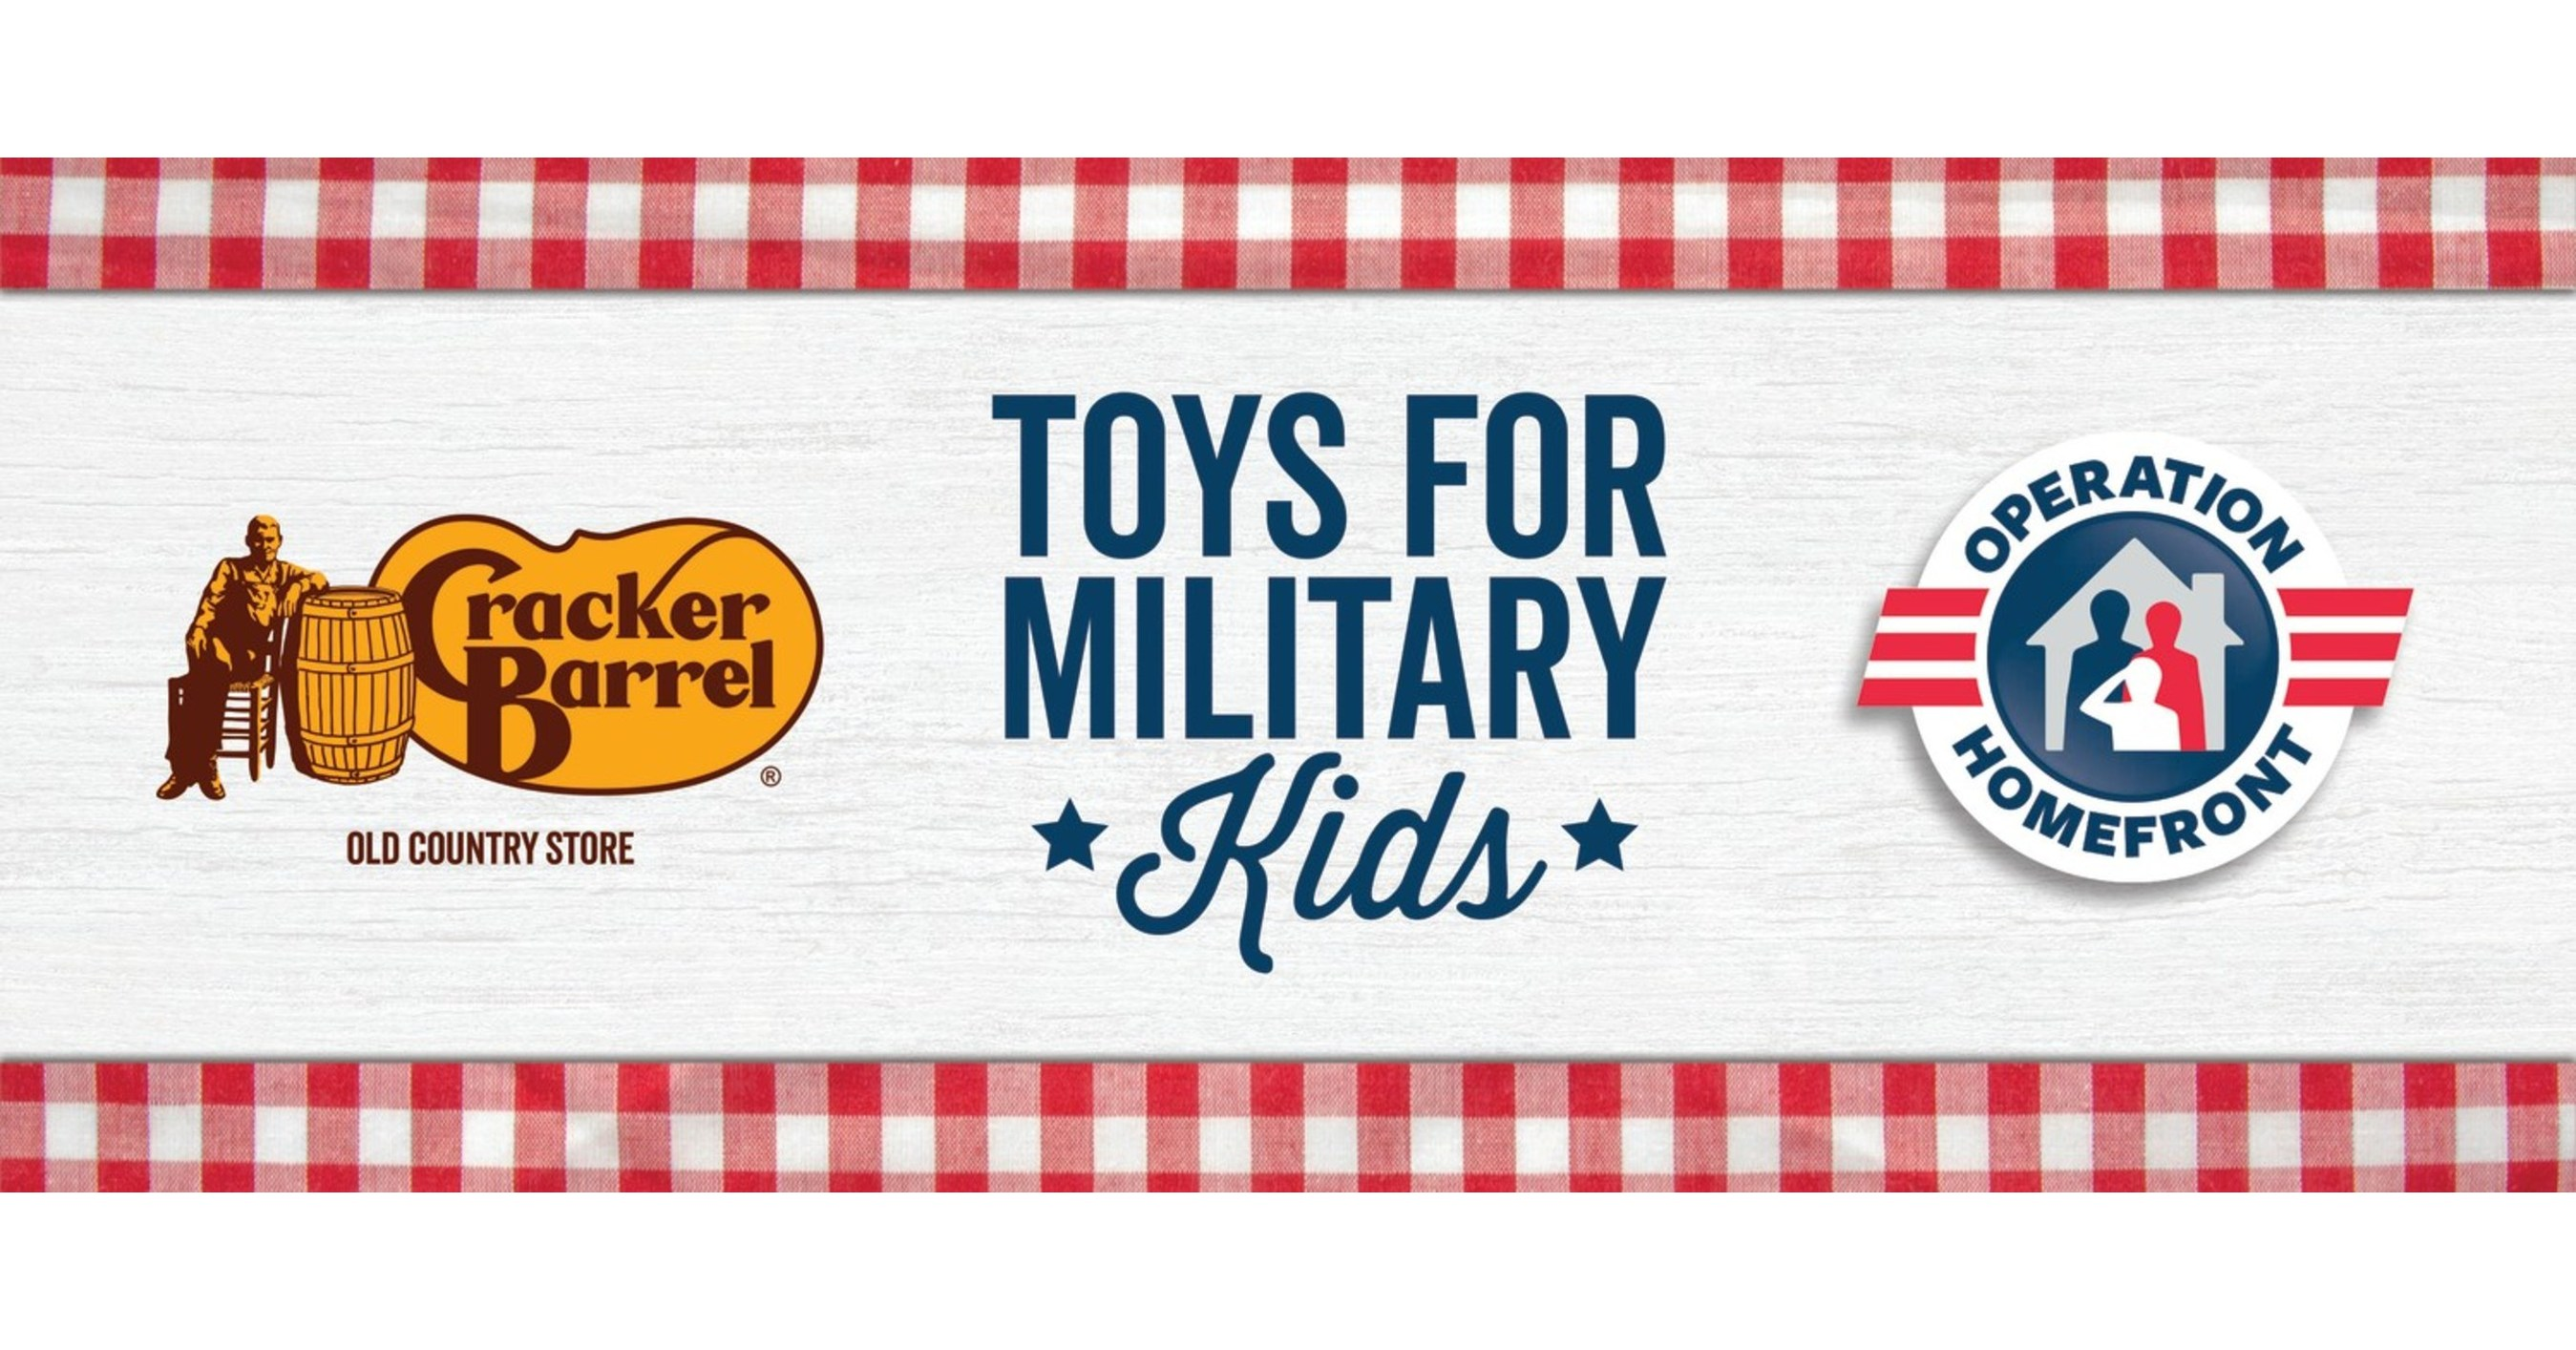 Cracker Barrel Toys : Military kids to receive toys with the help of cracker